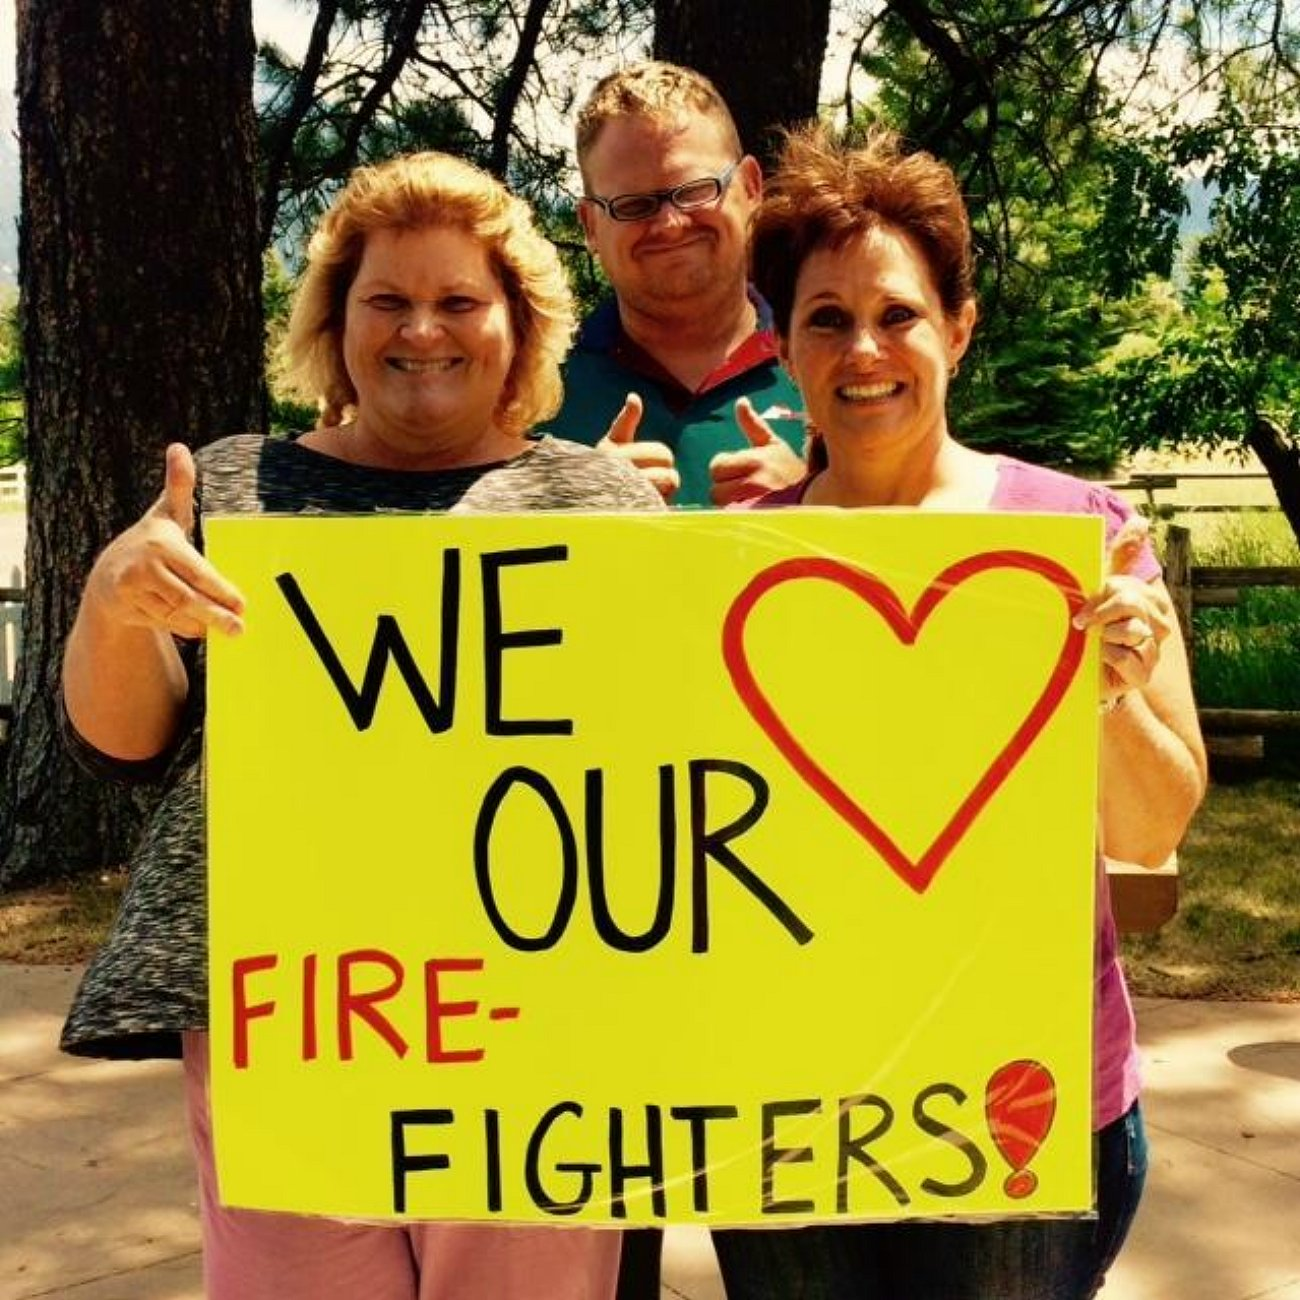 Pine Valley residents showing their support of the many firefighters who have descended on the small community to help combat the Saddle Fire, Pine Valley, Utah, June 30, 2016 | Photo courtesy of InciWeb, St. George News